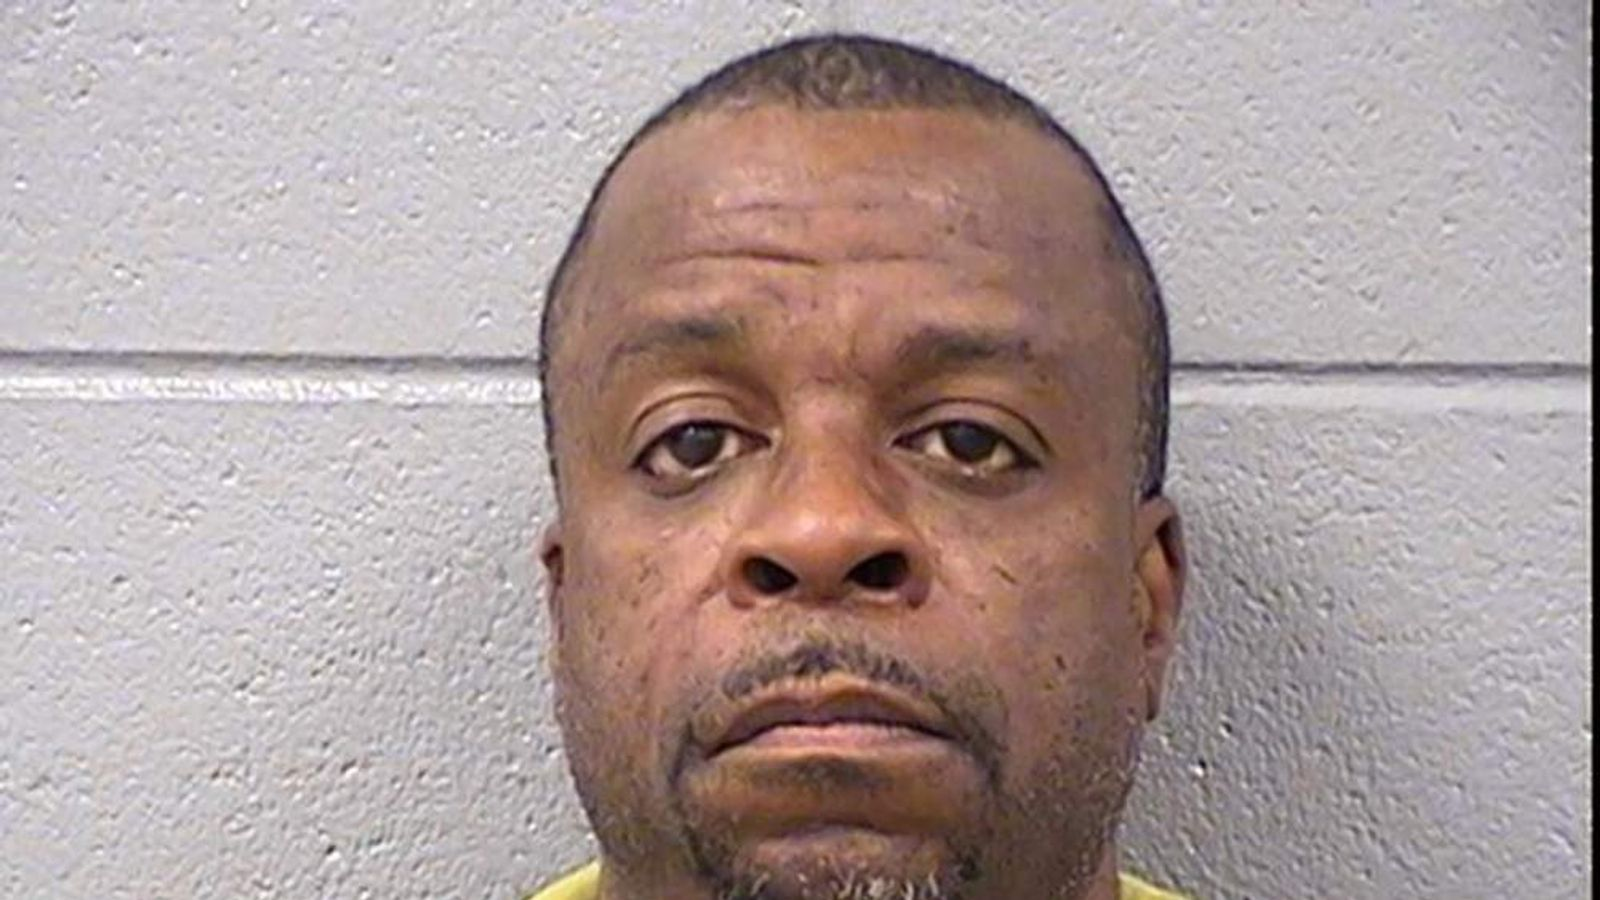 Joseph Fults, 46, faces two domestic violence charges in the US. Pic: Cook County Sheriff's Office